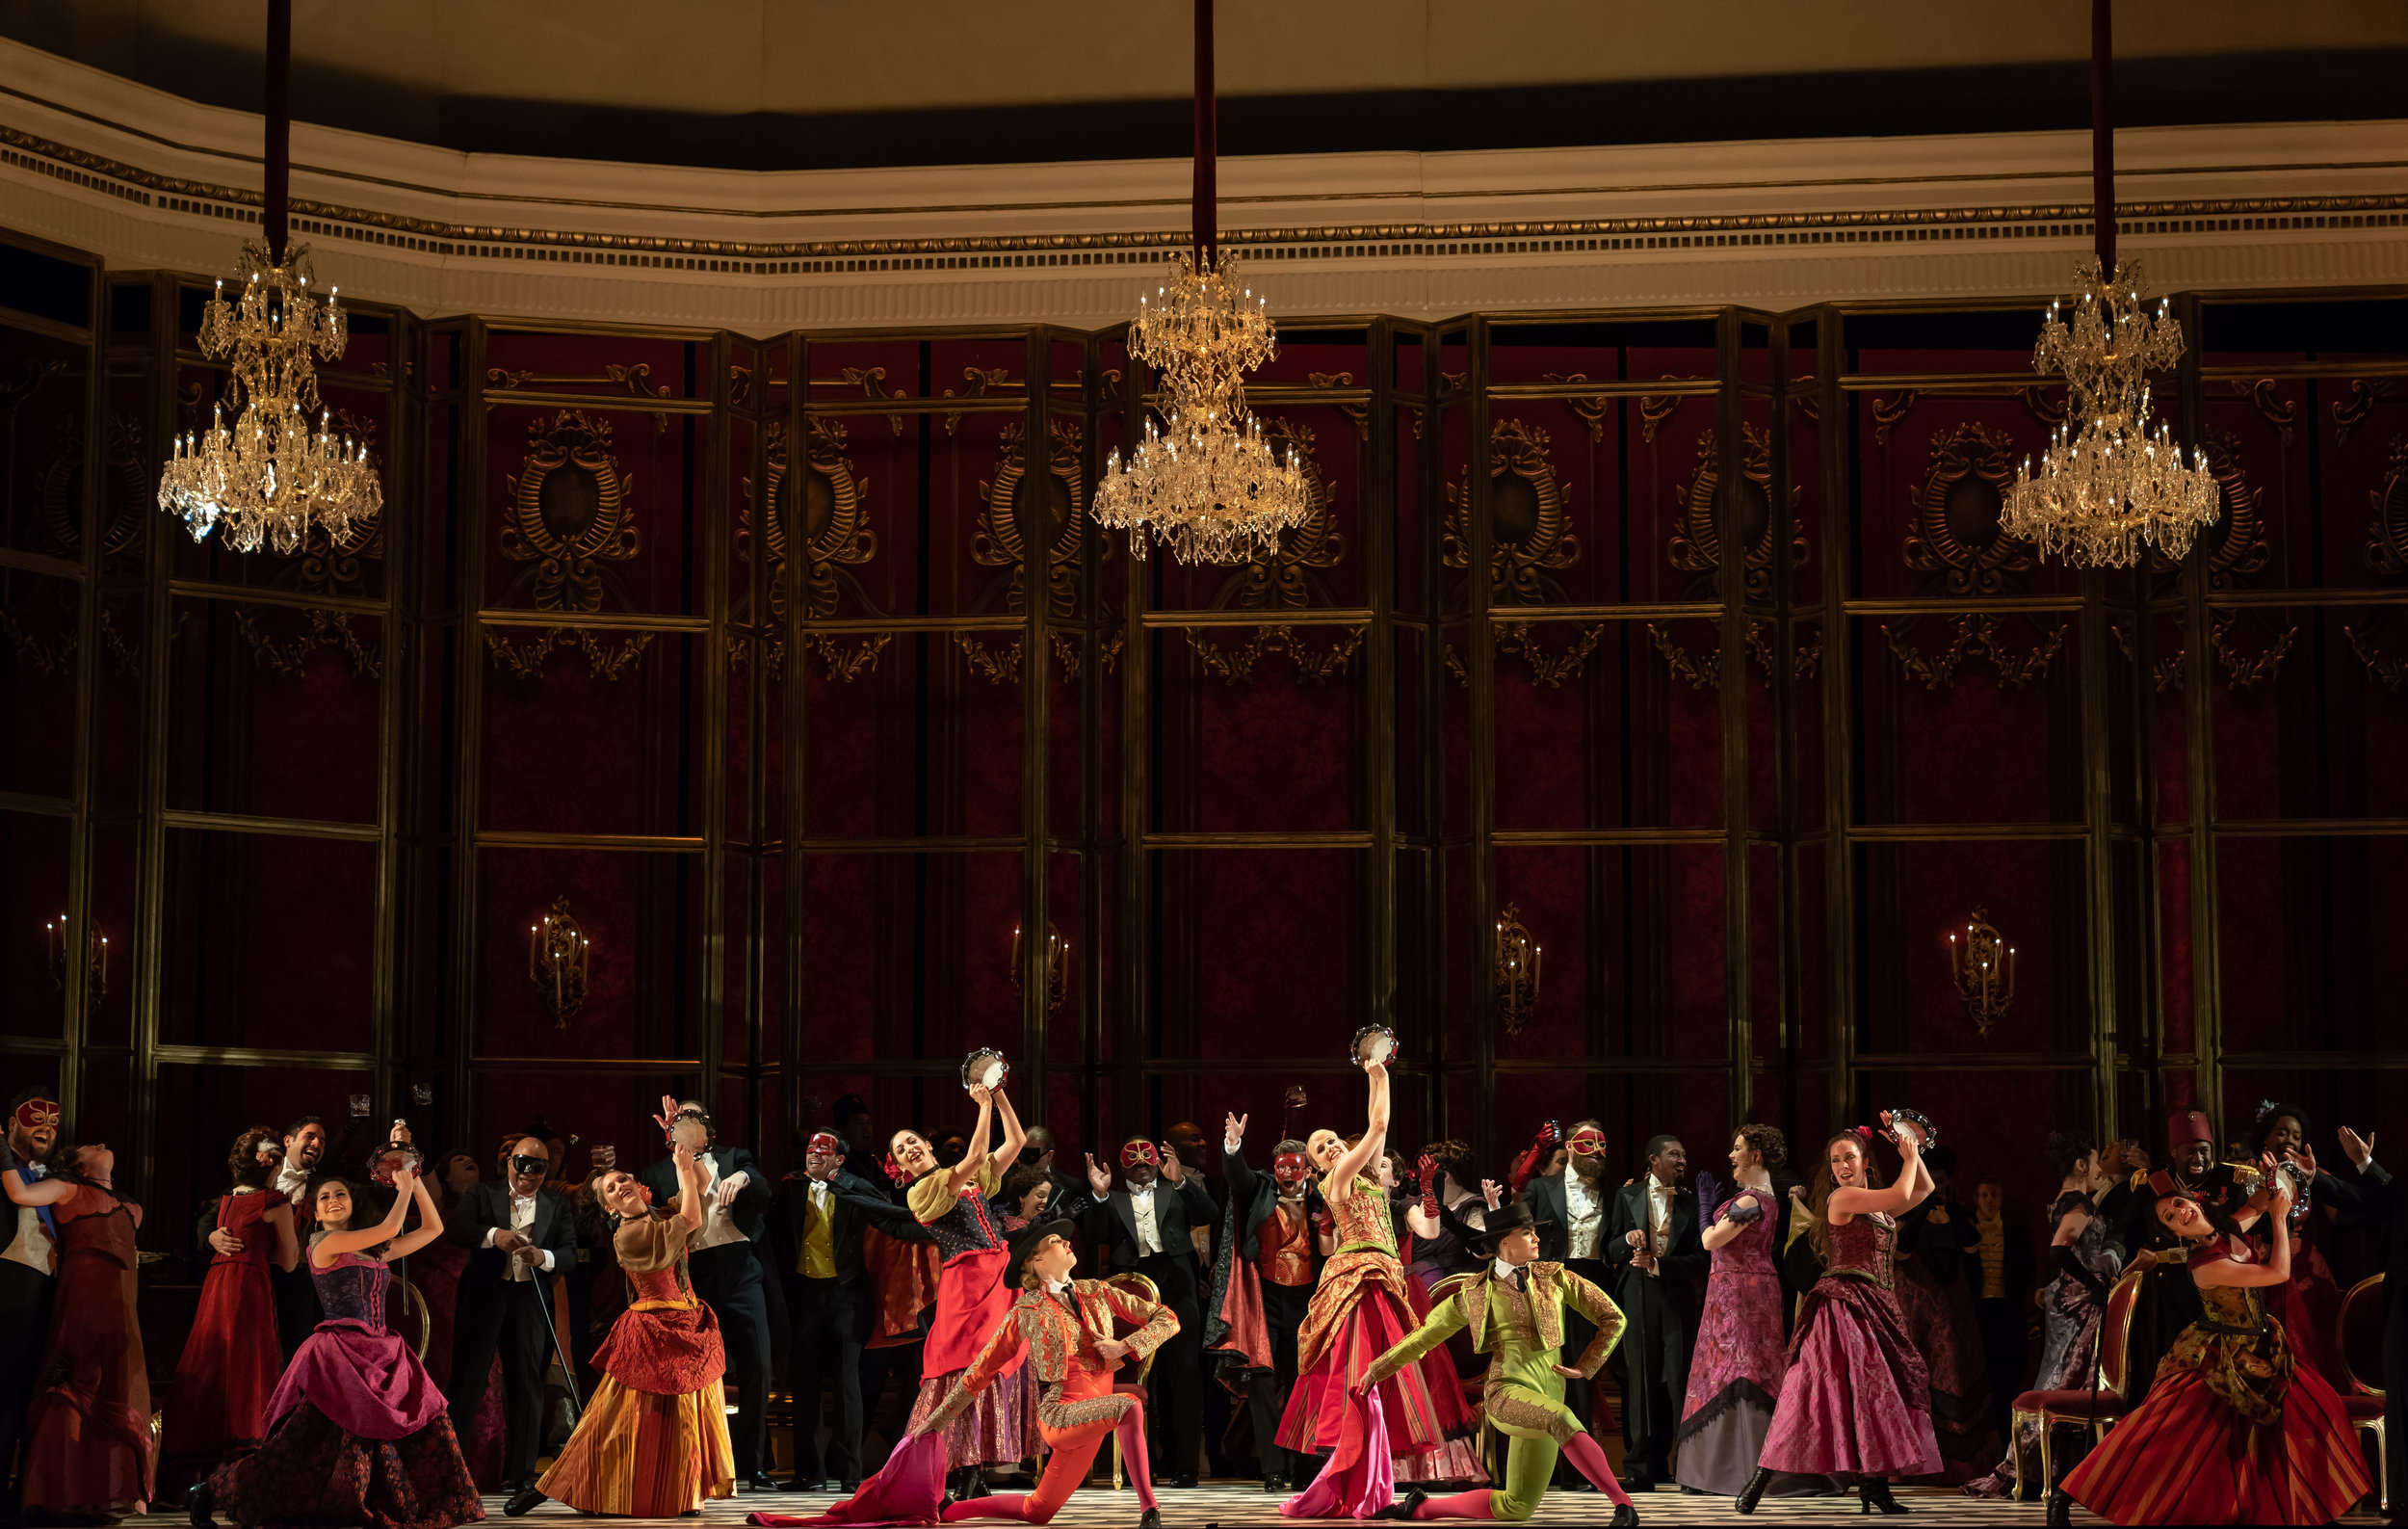 Dancers and matadors enliven the party during WNO's La traviata 2018 production_credit Scott Suchman.jpg